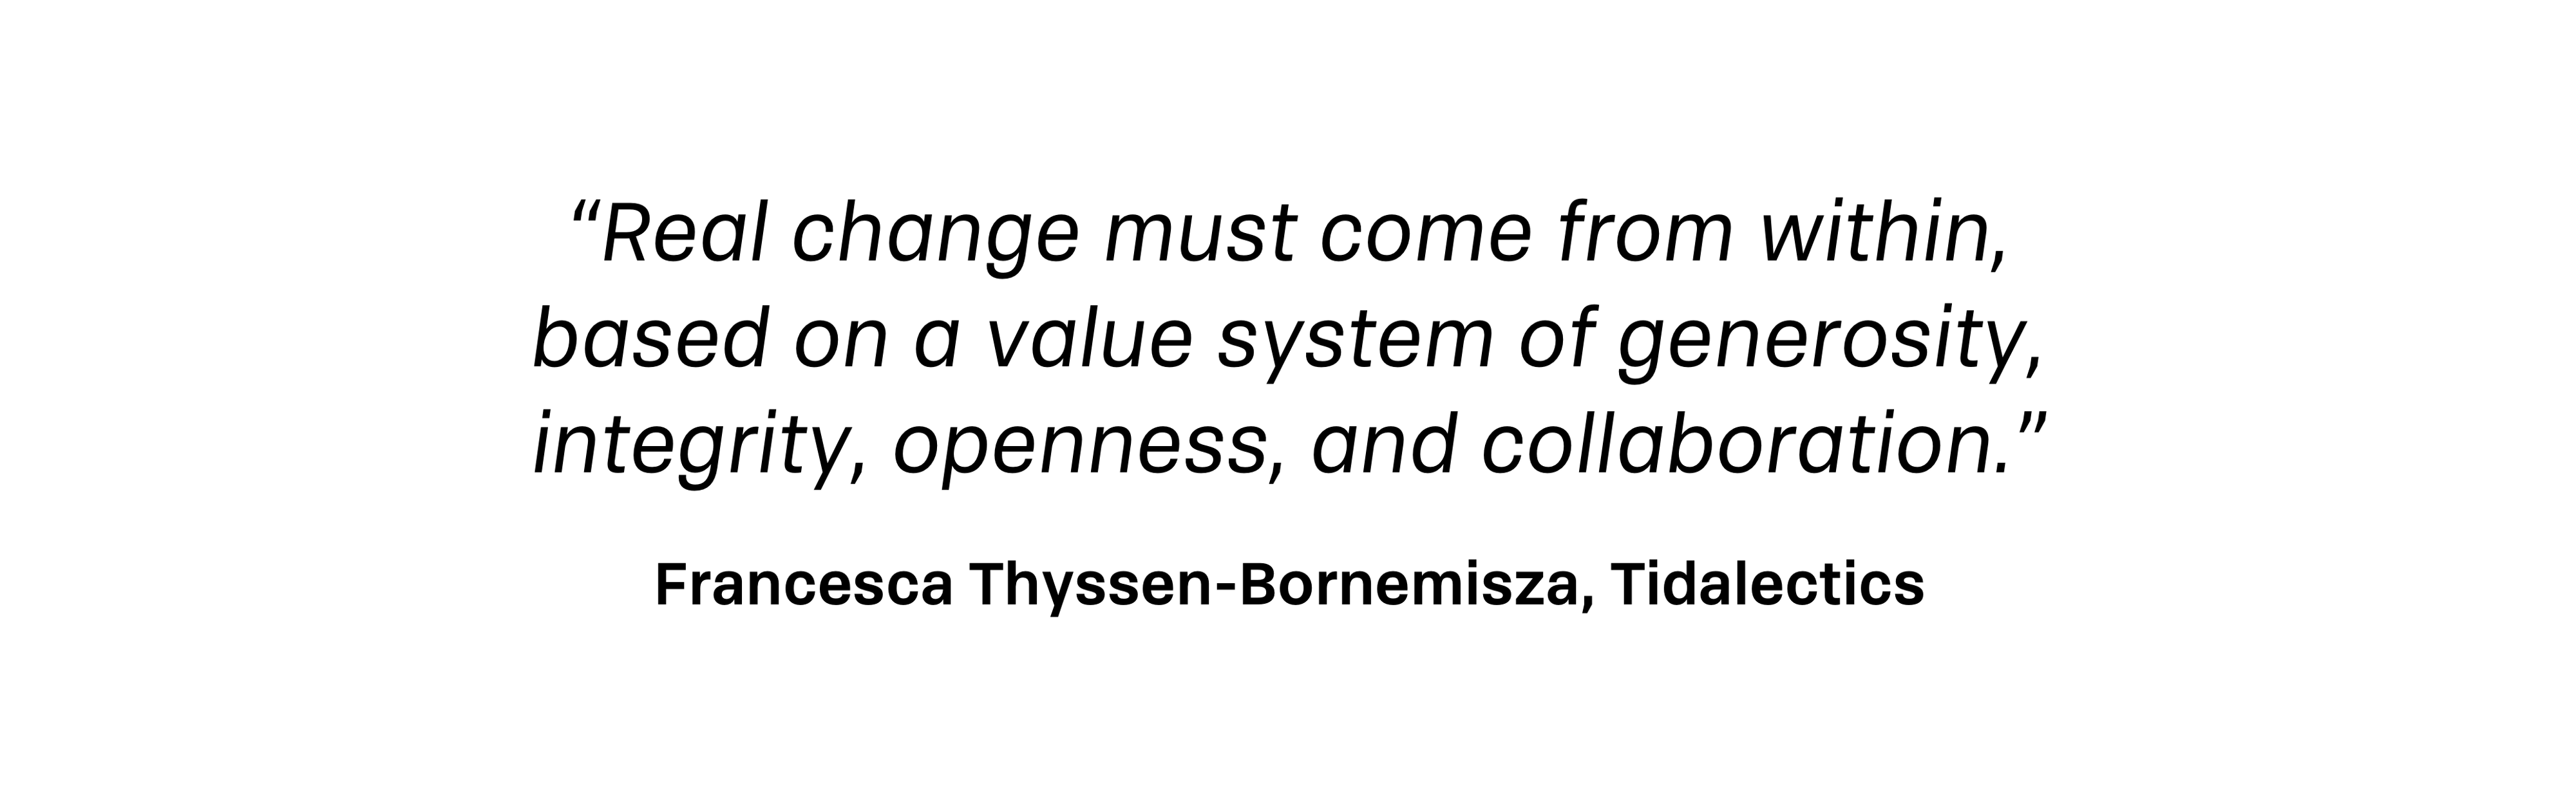 Real change must come from within, based on a value system of generosity, integrity, openness, and collaboration.—Francesca